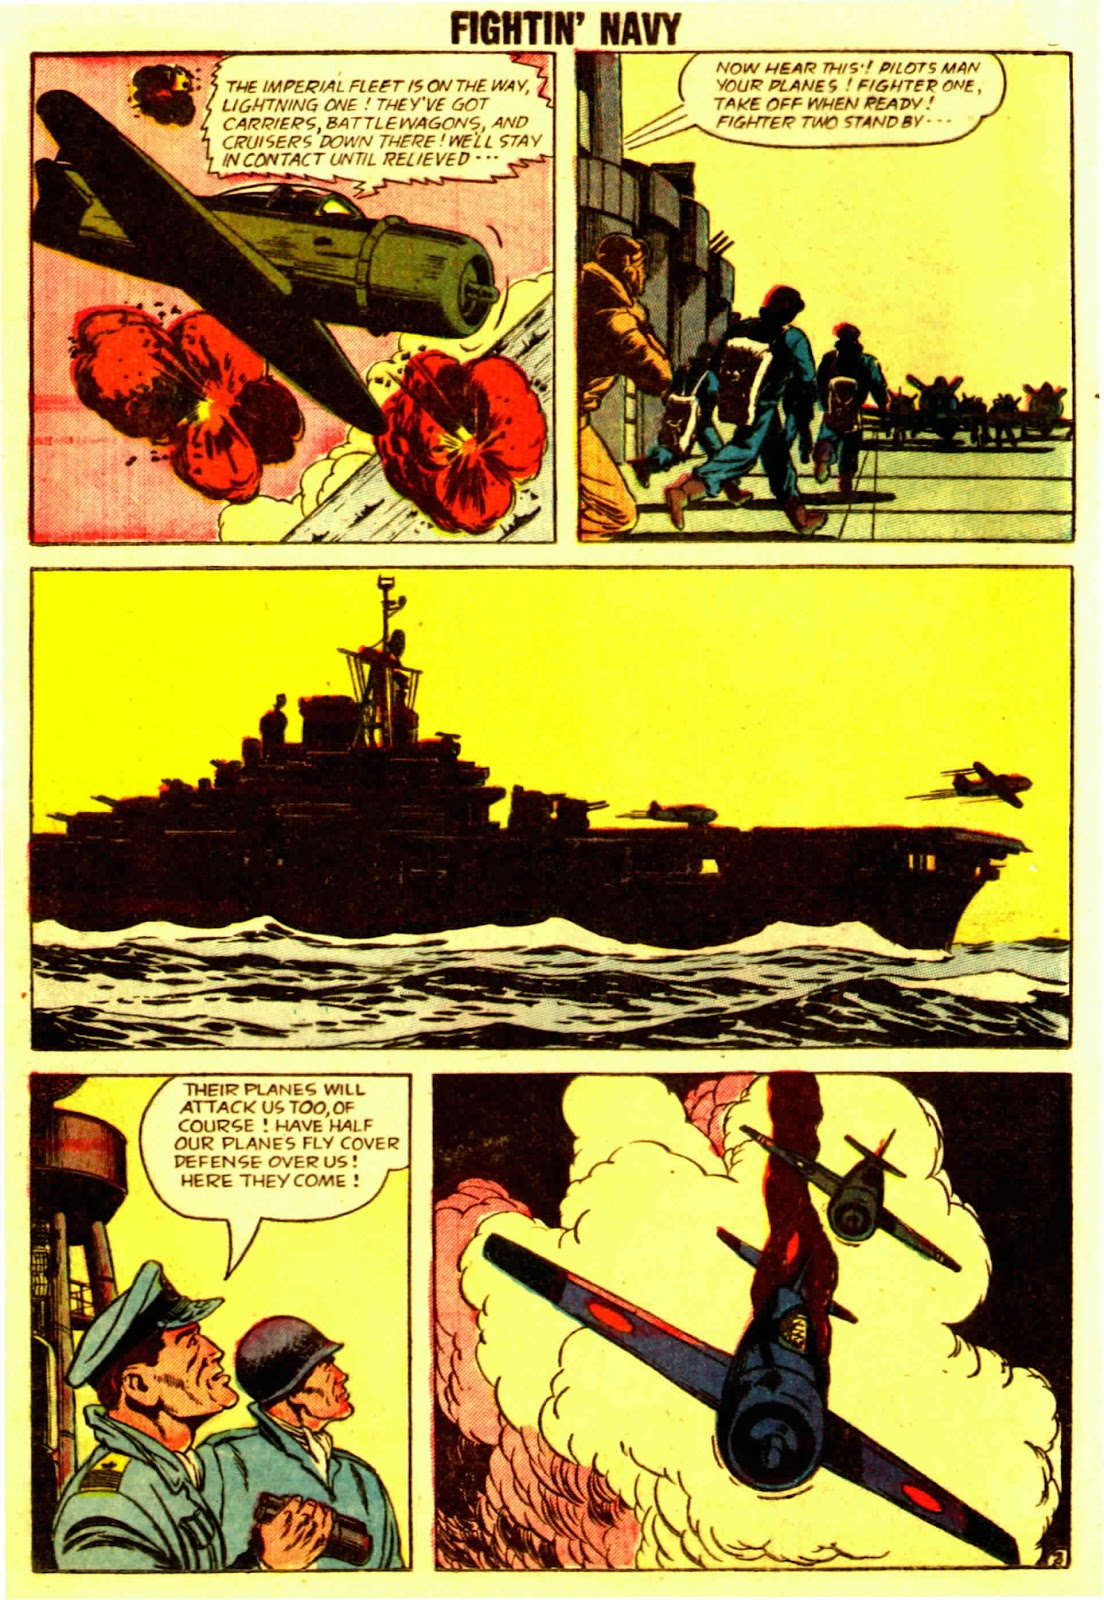 Read online Fightin' Navy comic -  Issue #83 - 22